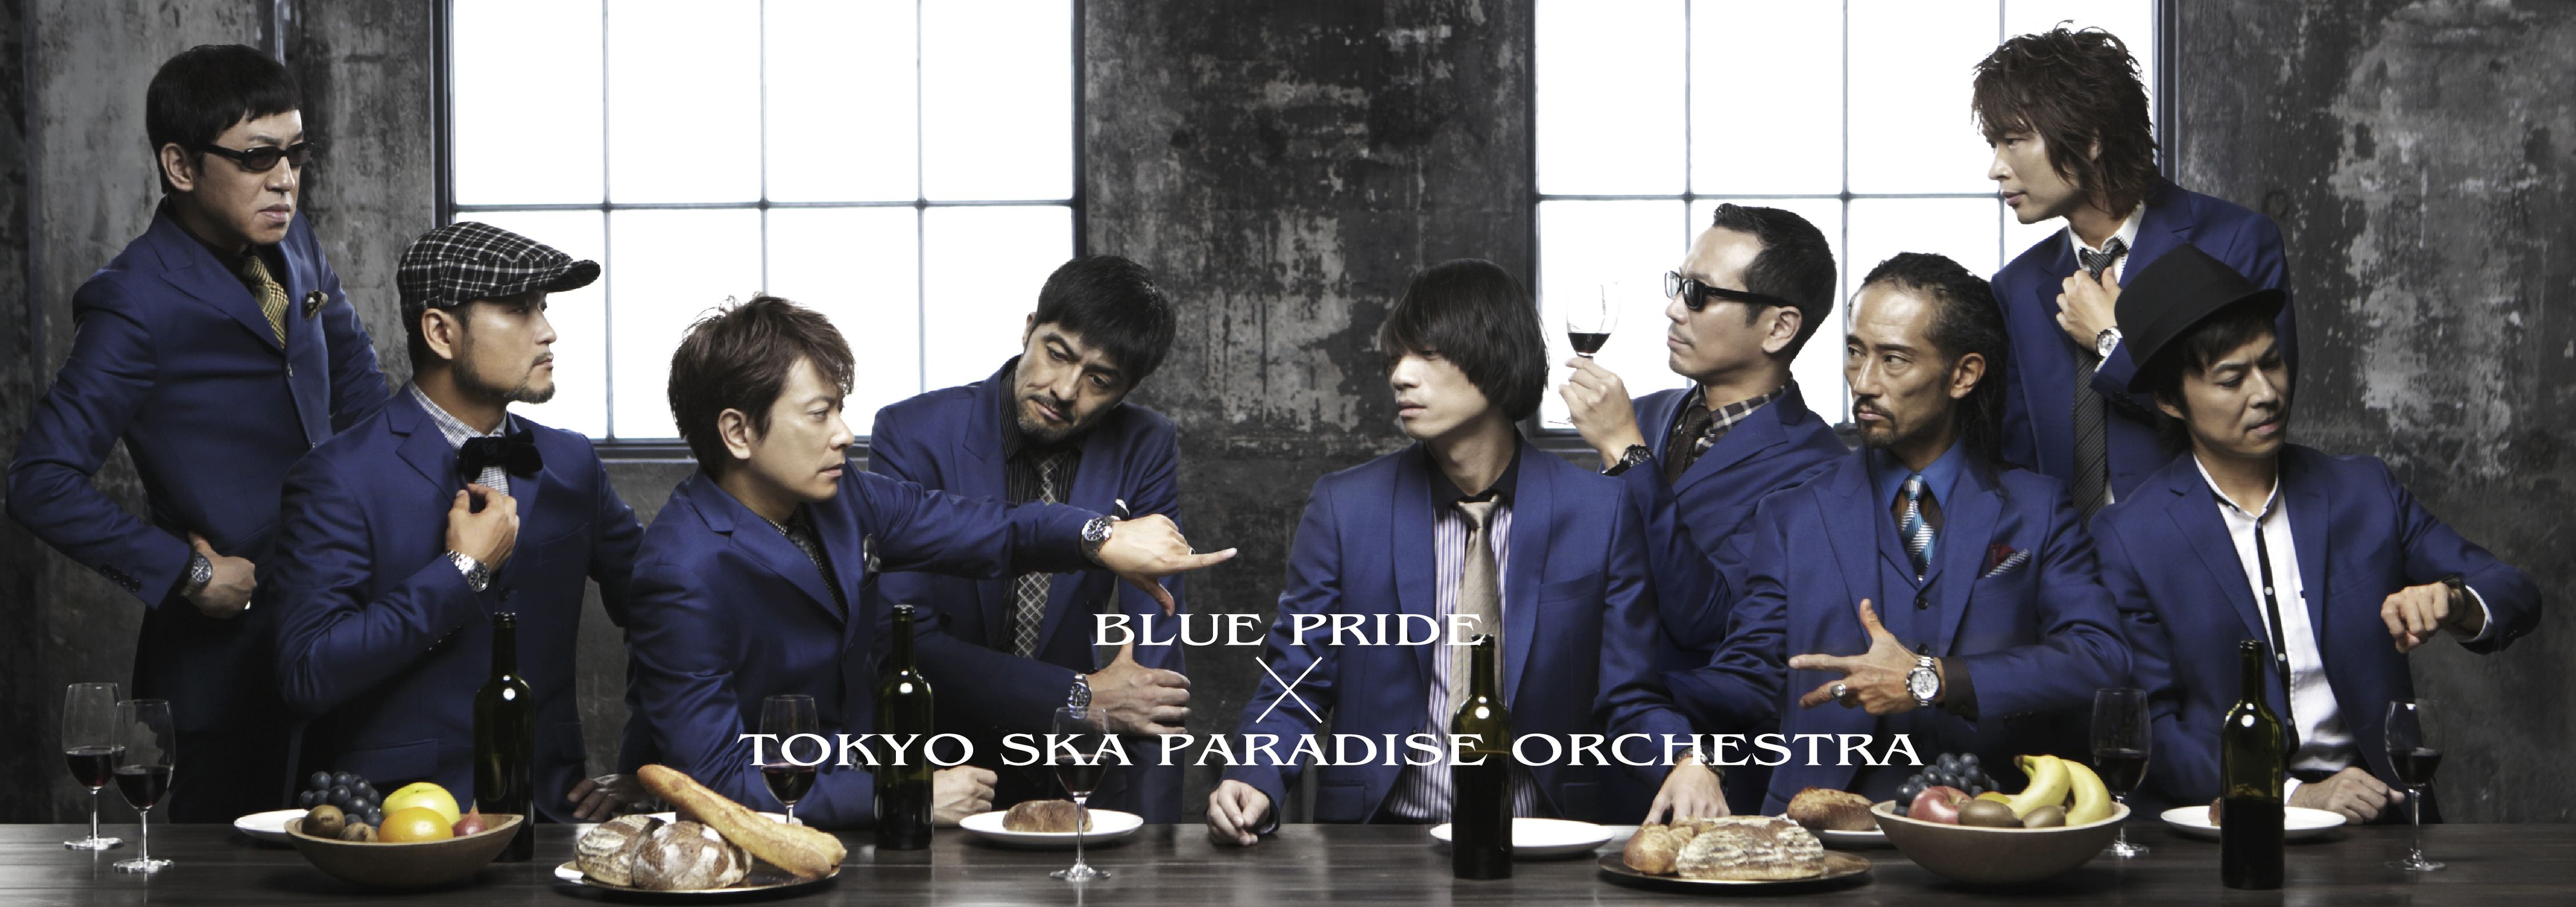 Tokyo Ska Paradise Orchestra - Moods For Tokyo Ska: We Don't Know What Ska Is!